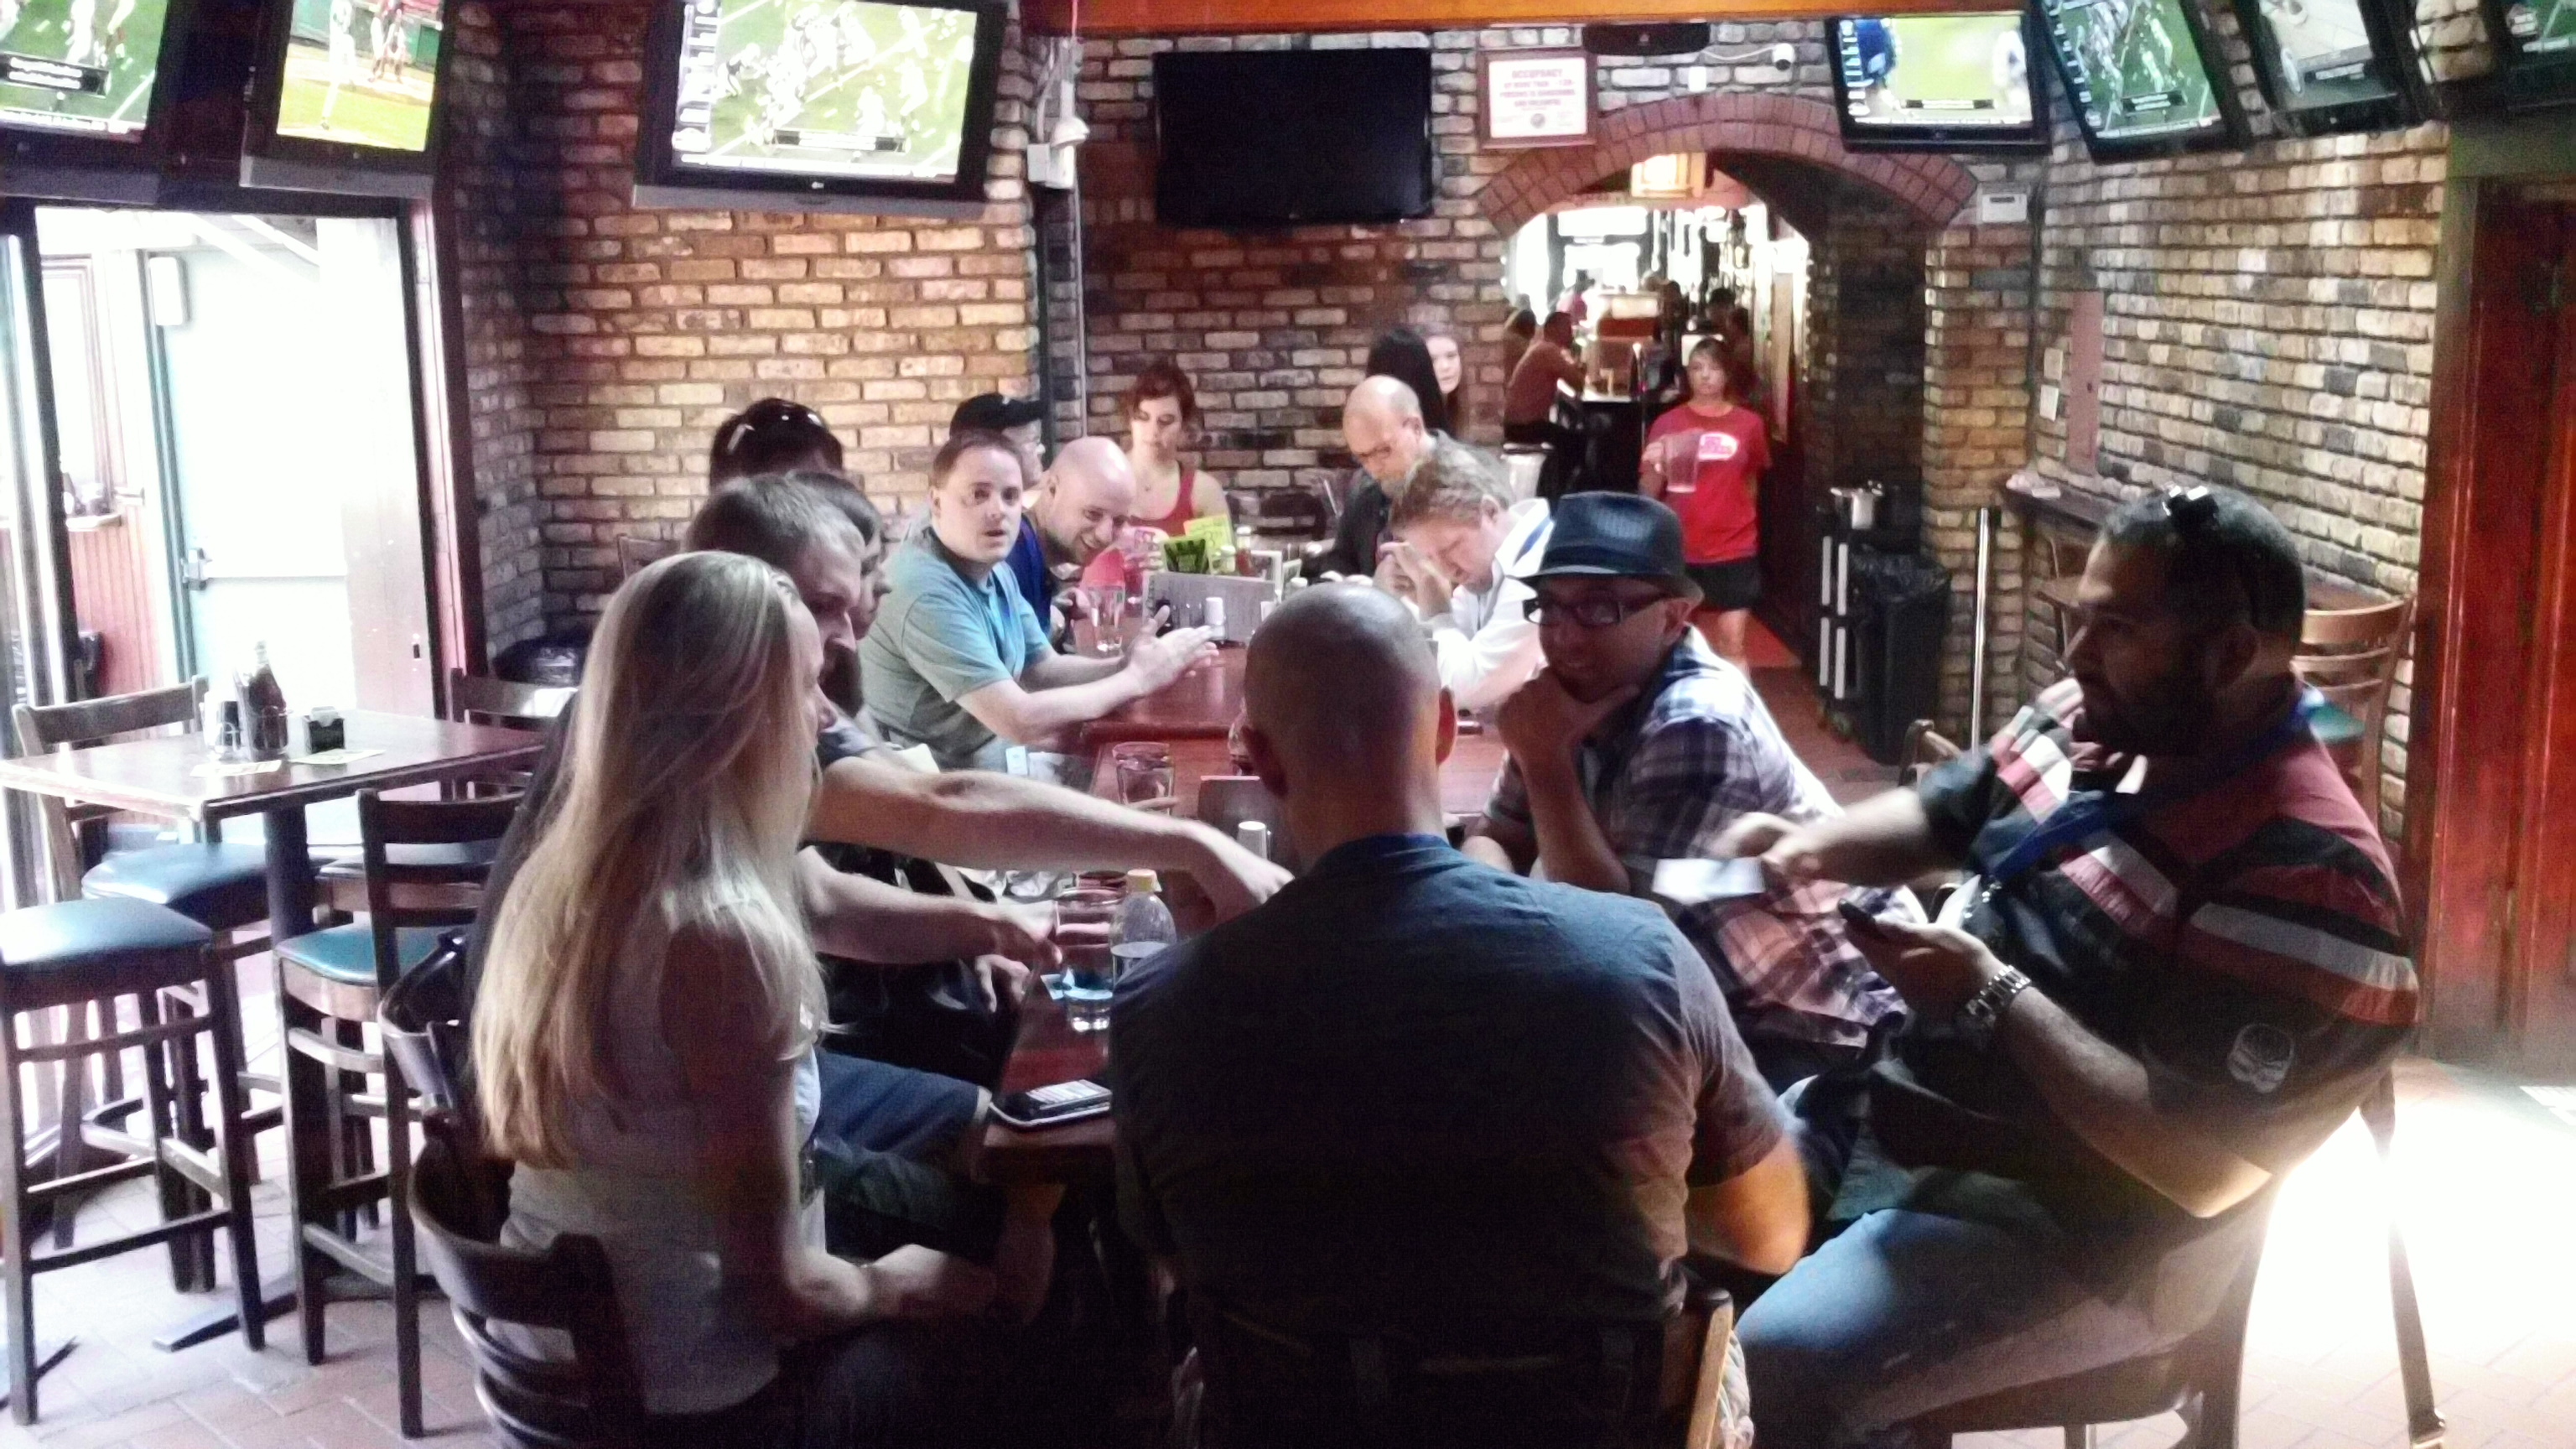 Photo of people sitting around a table awaiting lunch in a bar